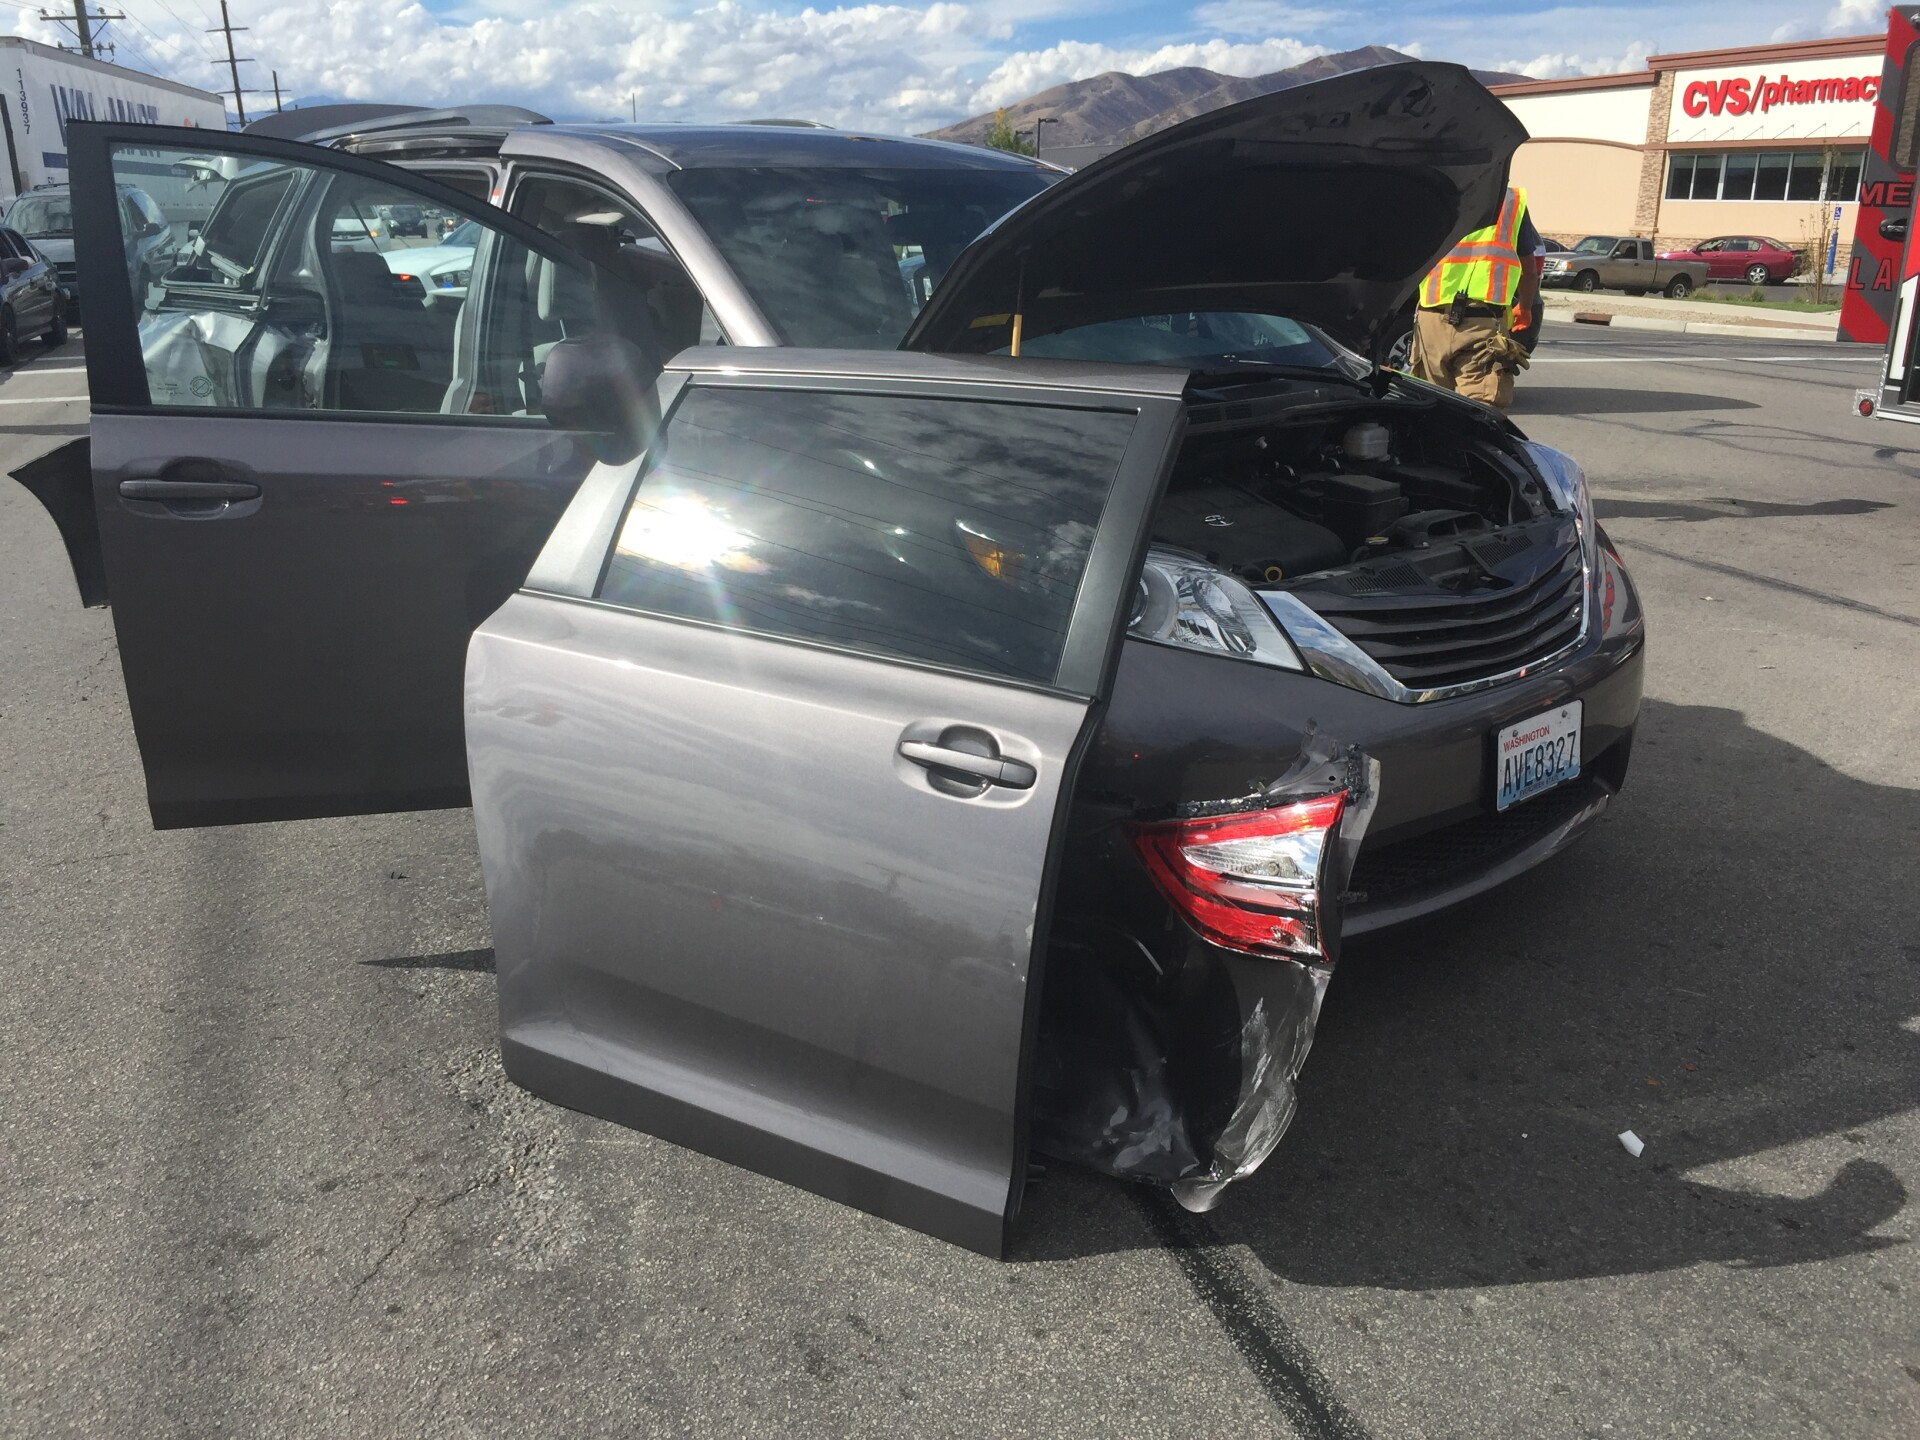 Photos: Woman in critical condition after van rear-ended inHighland